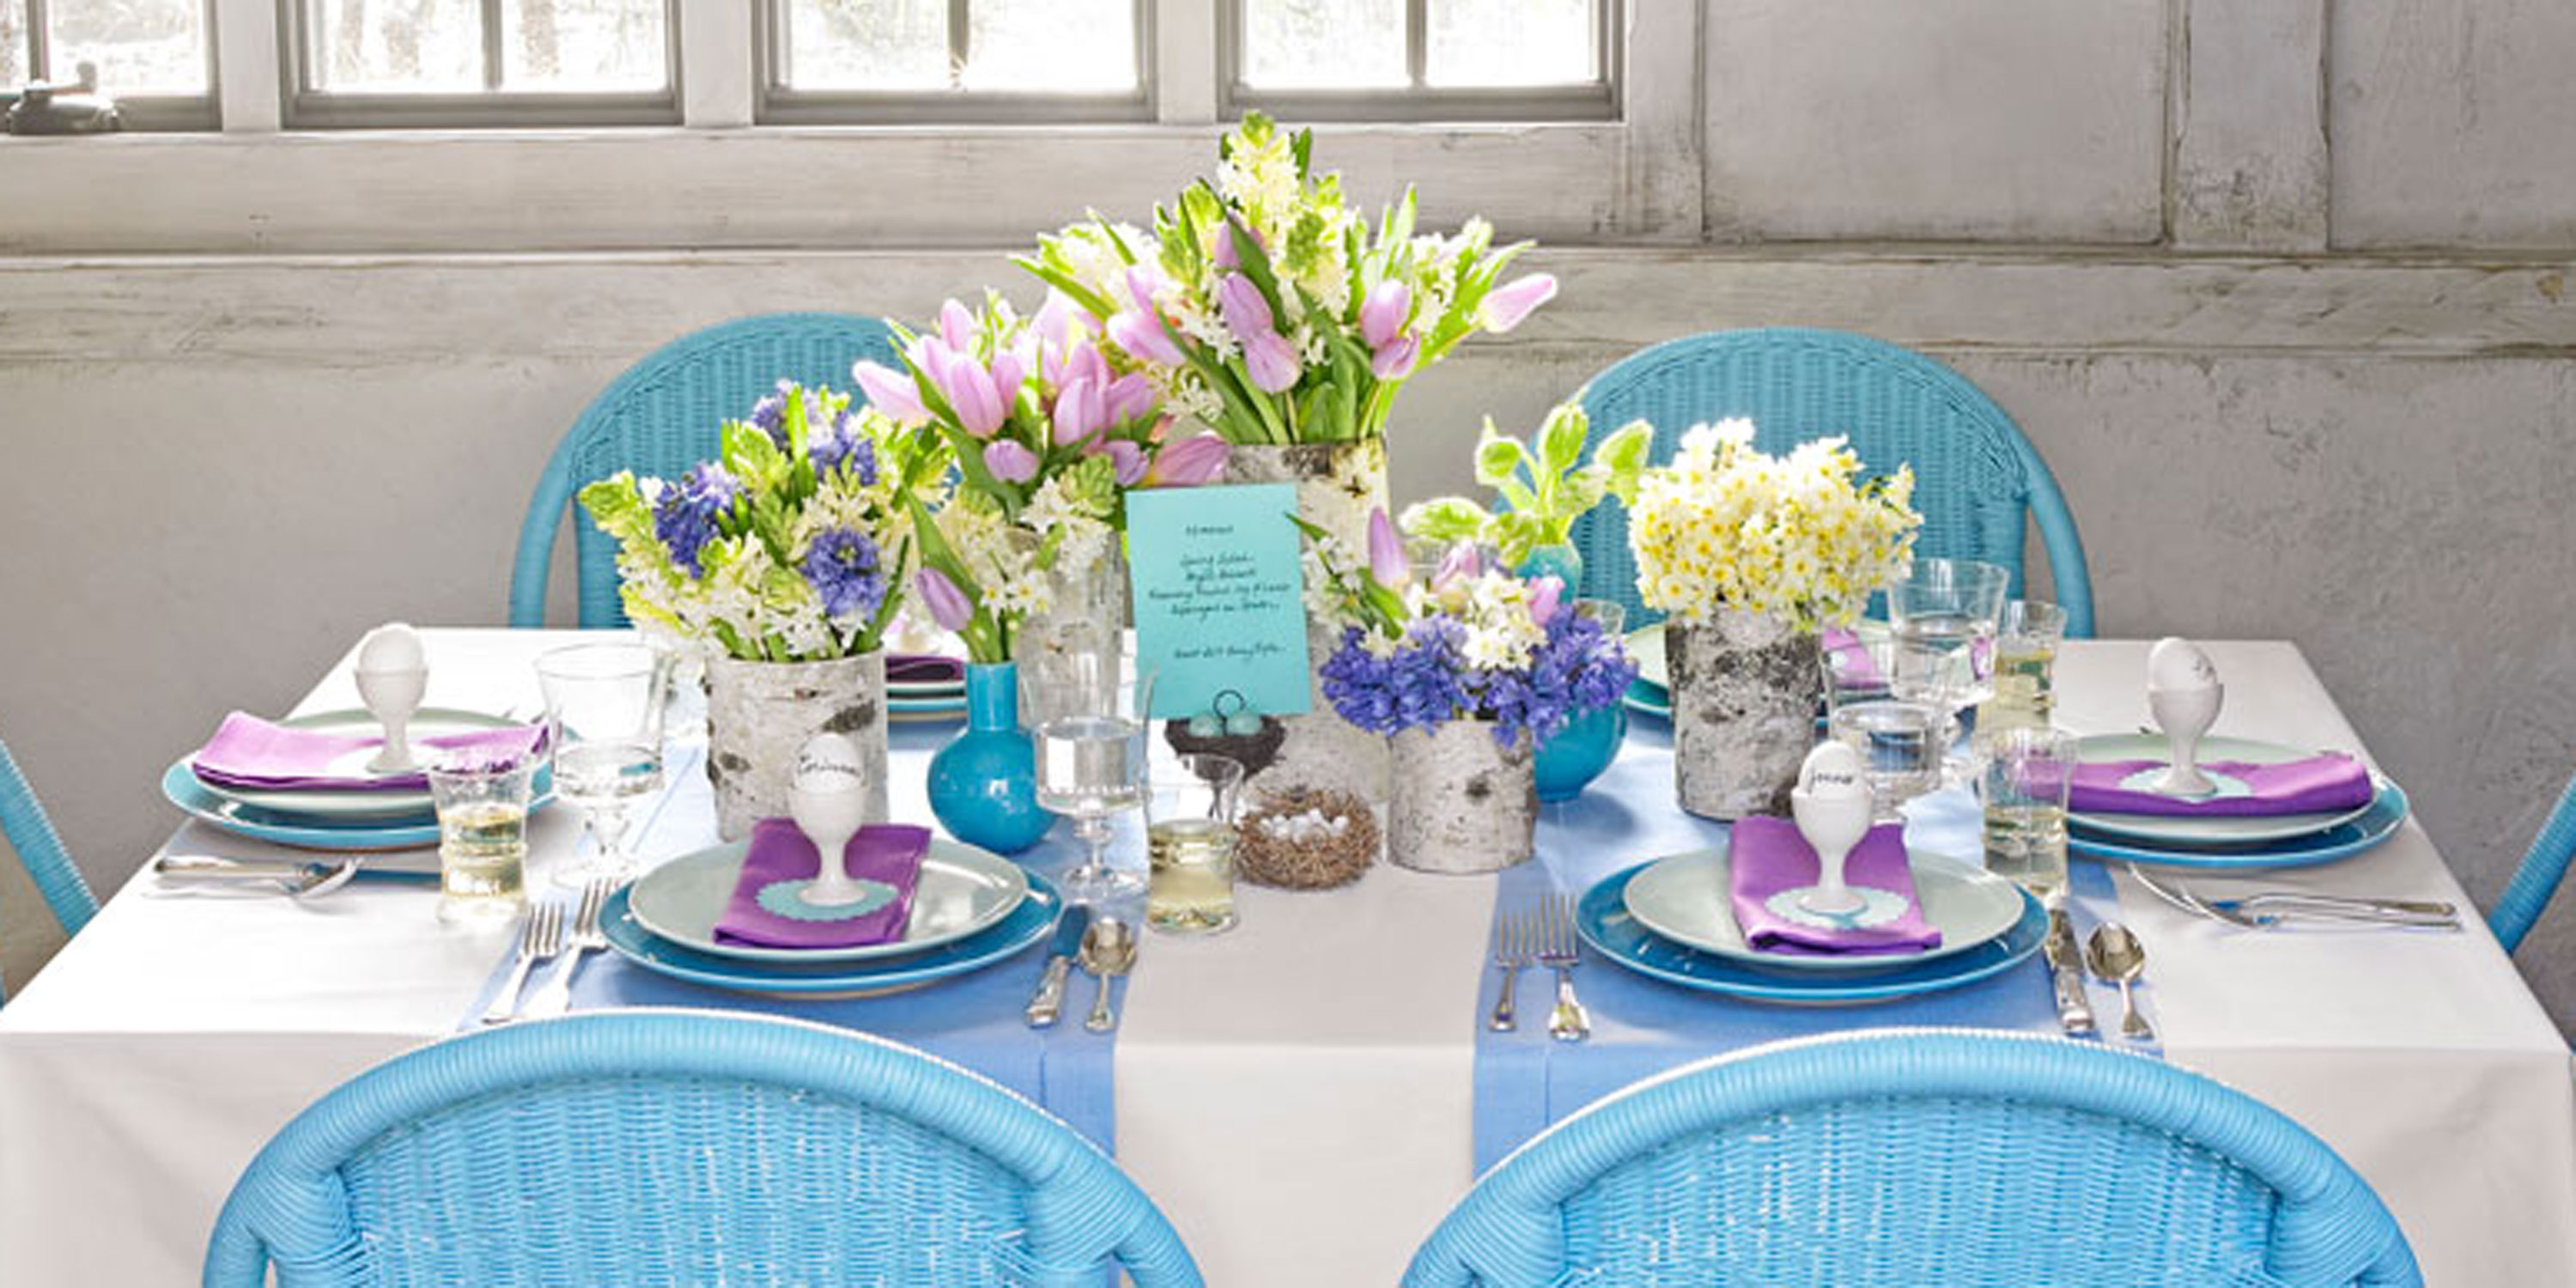 58 Spring Centerpieces And Table Decorations Ideas For